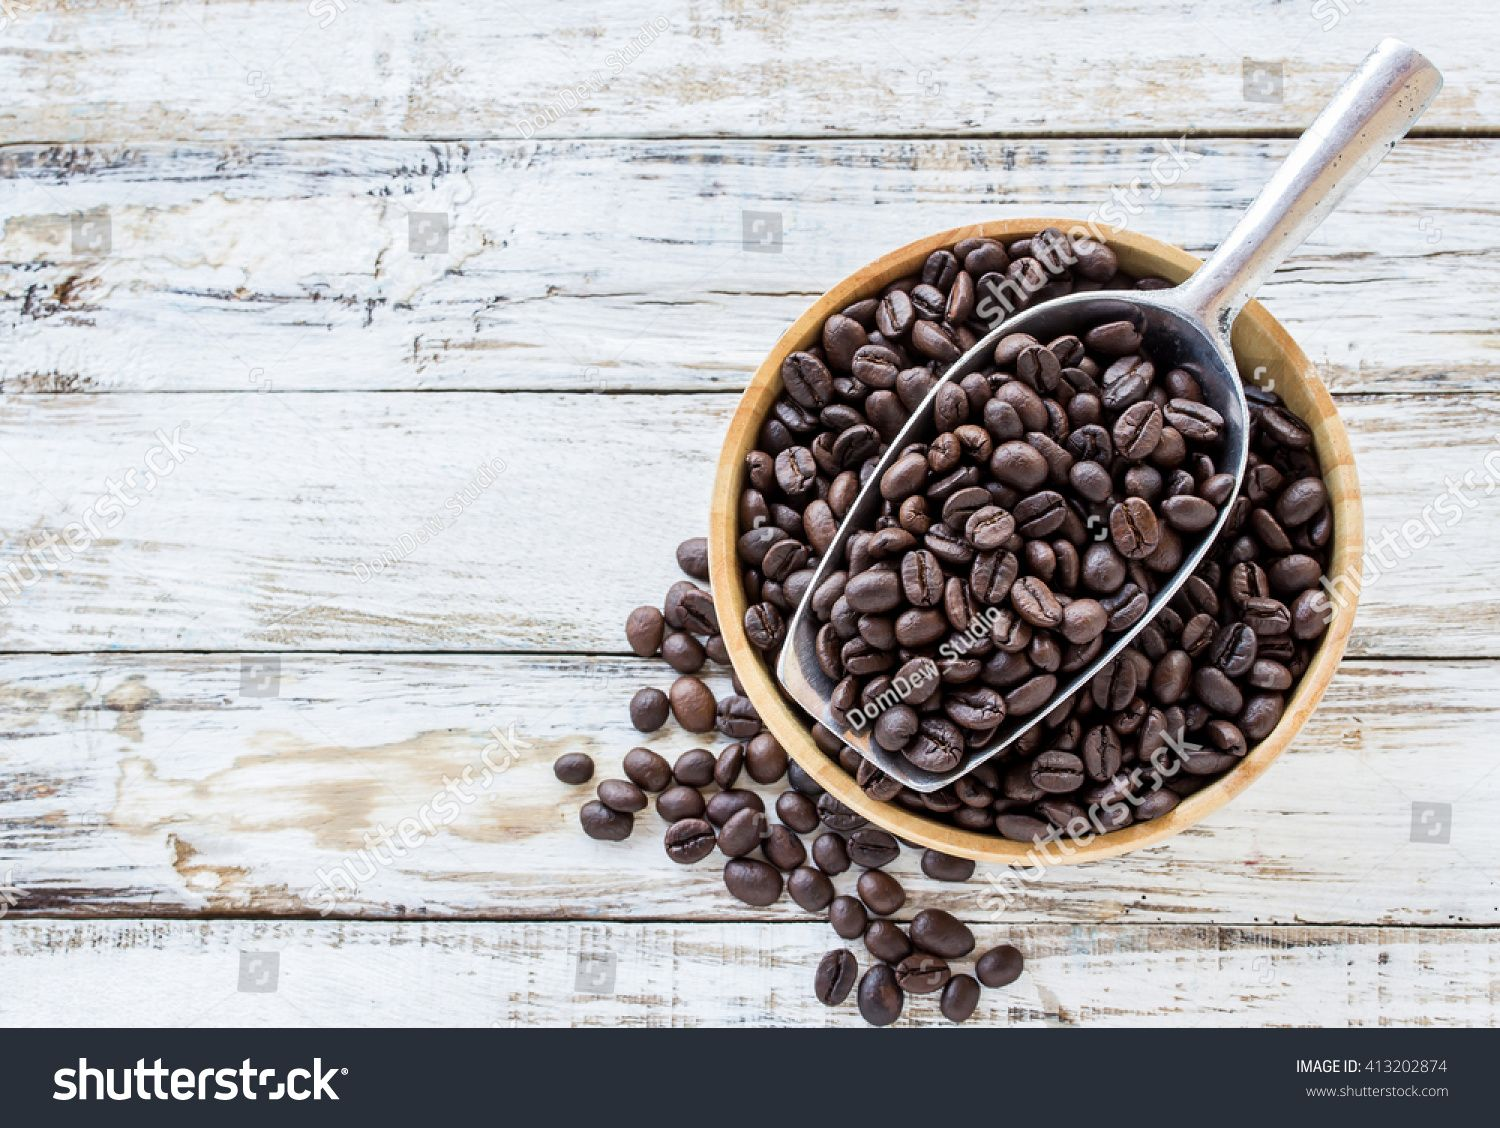 Big Stainless Steel Scoop Of Coffee Beans On White Wooden Table Sponsored Affiliate Steel Scoop Big Stainless In 2020 Food Oatmeal Stock Photos